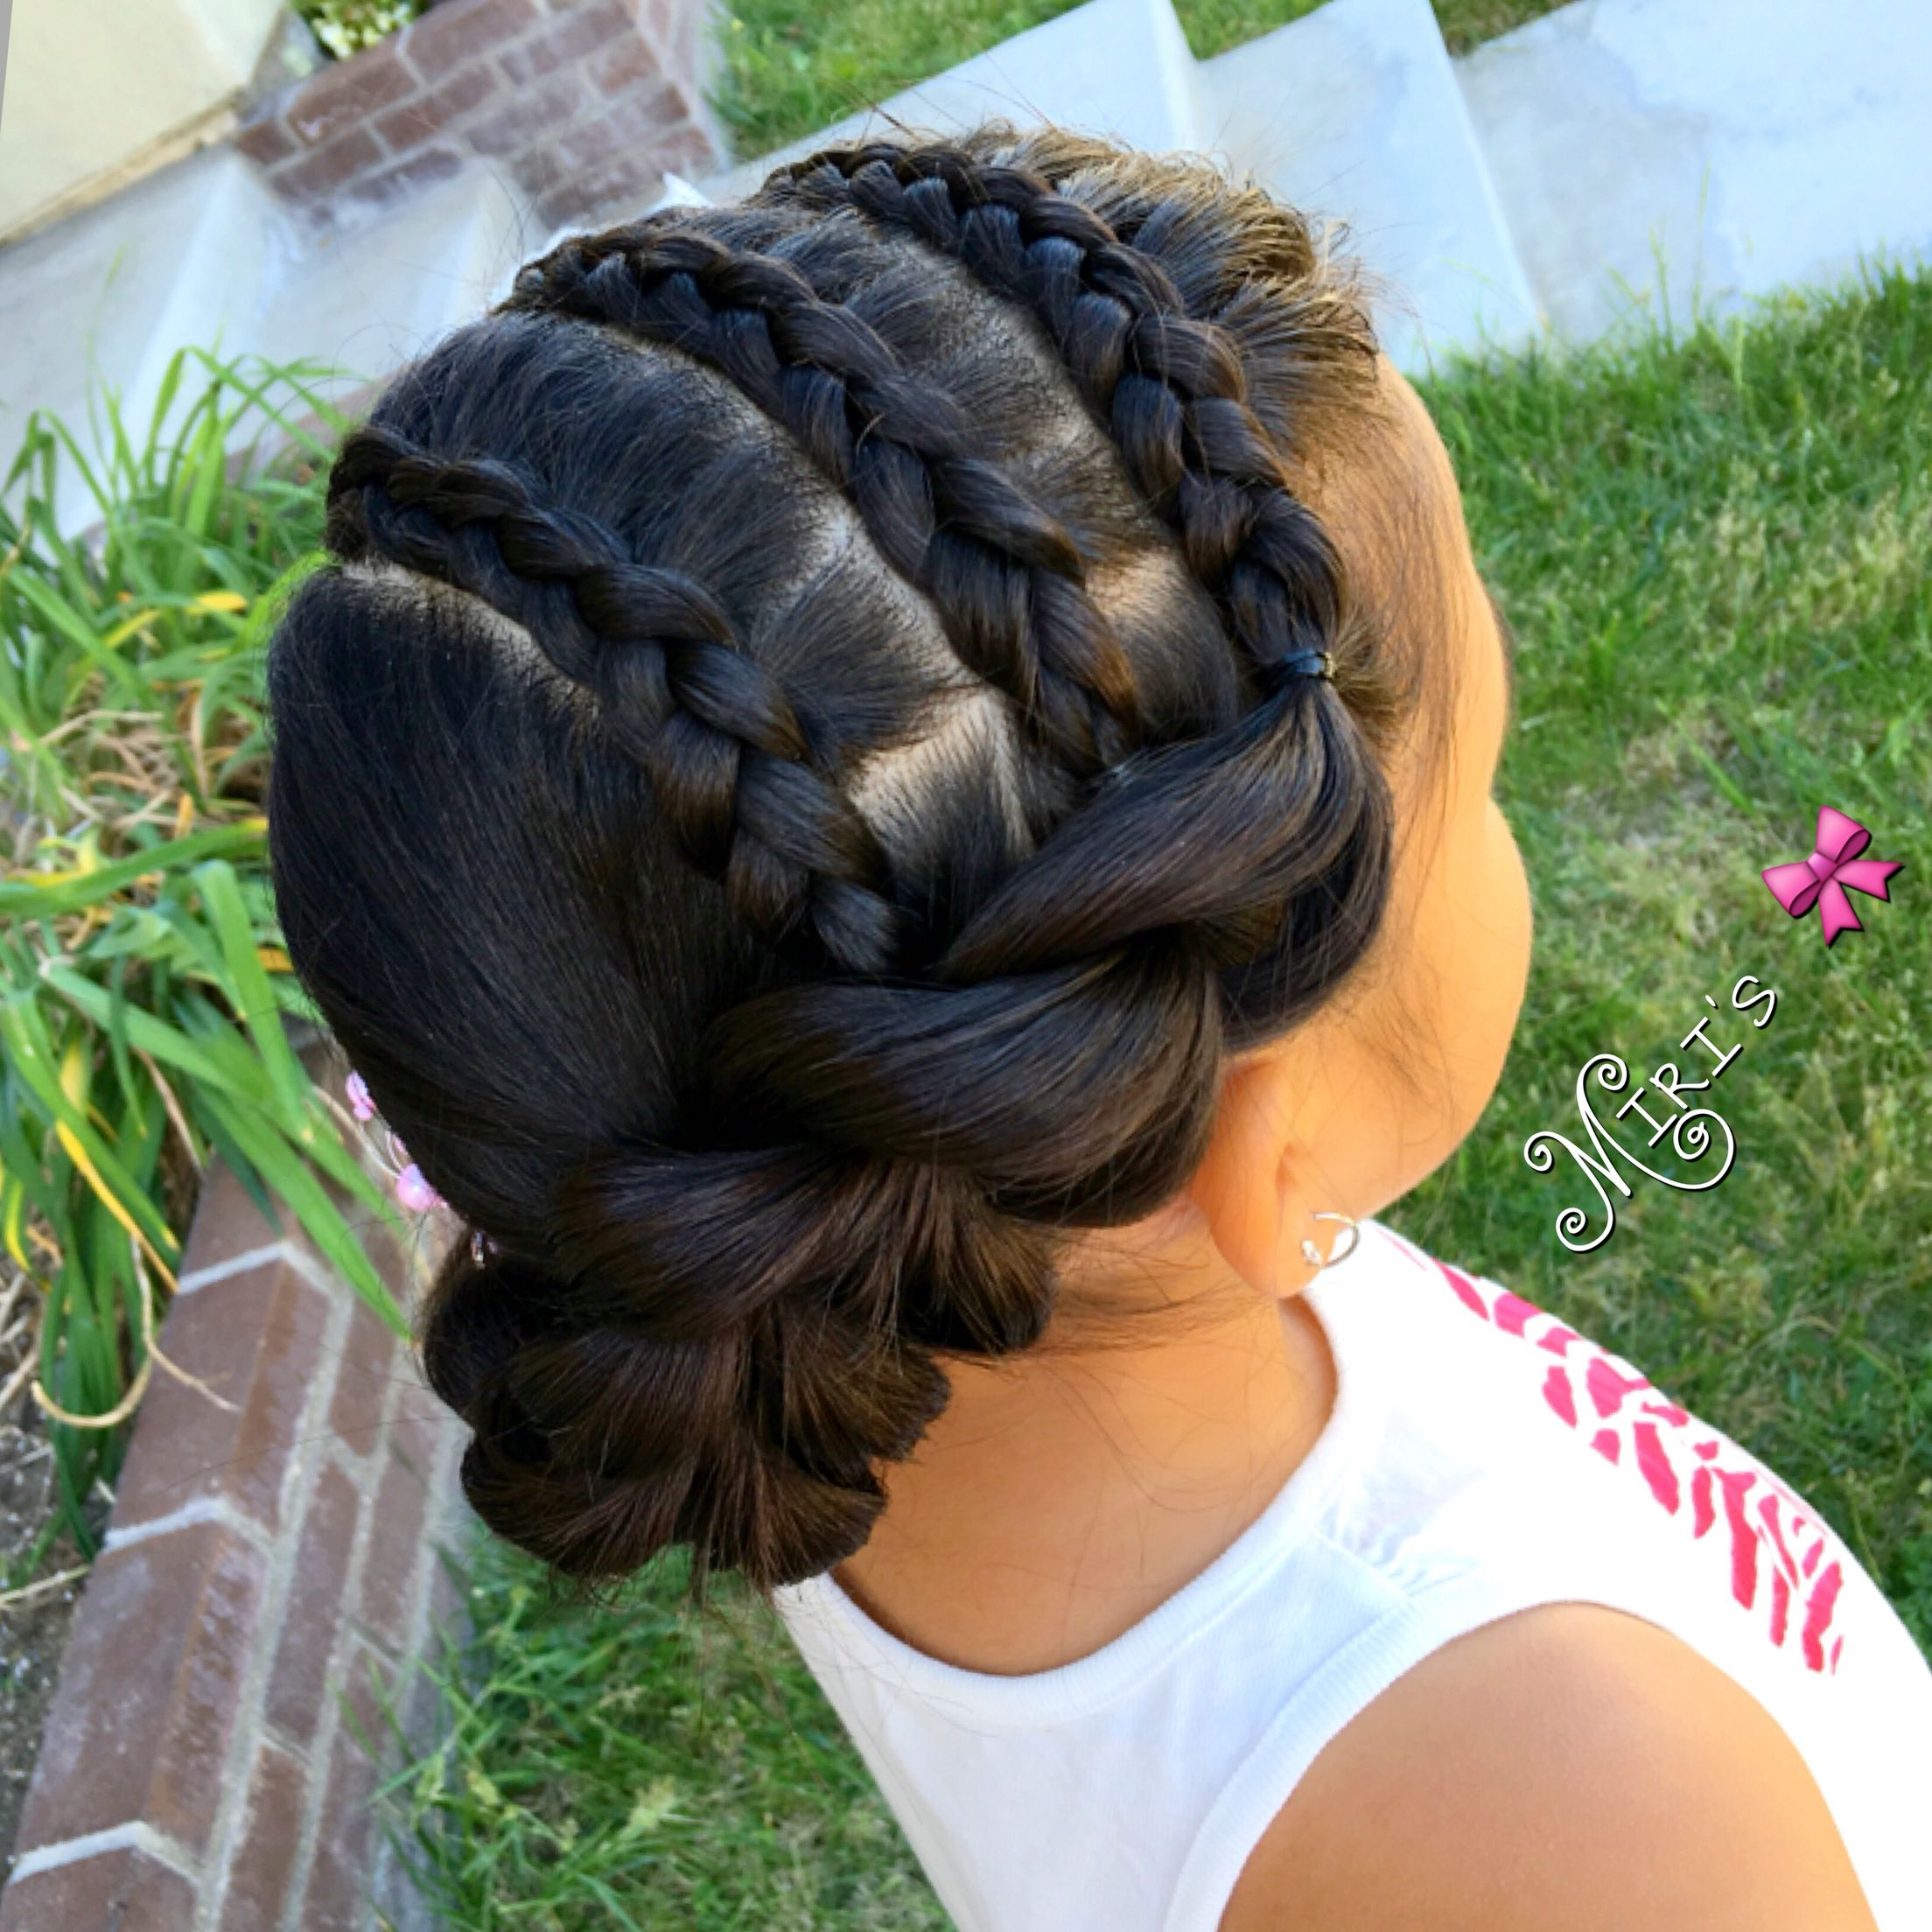 Hair style for little girls baby girl pinterest hair style